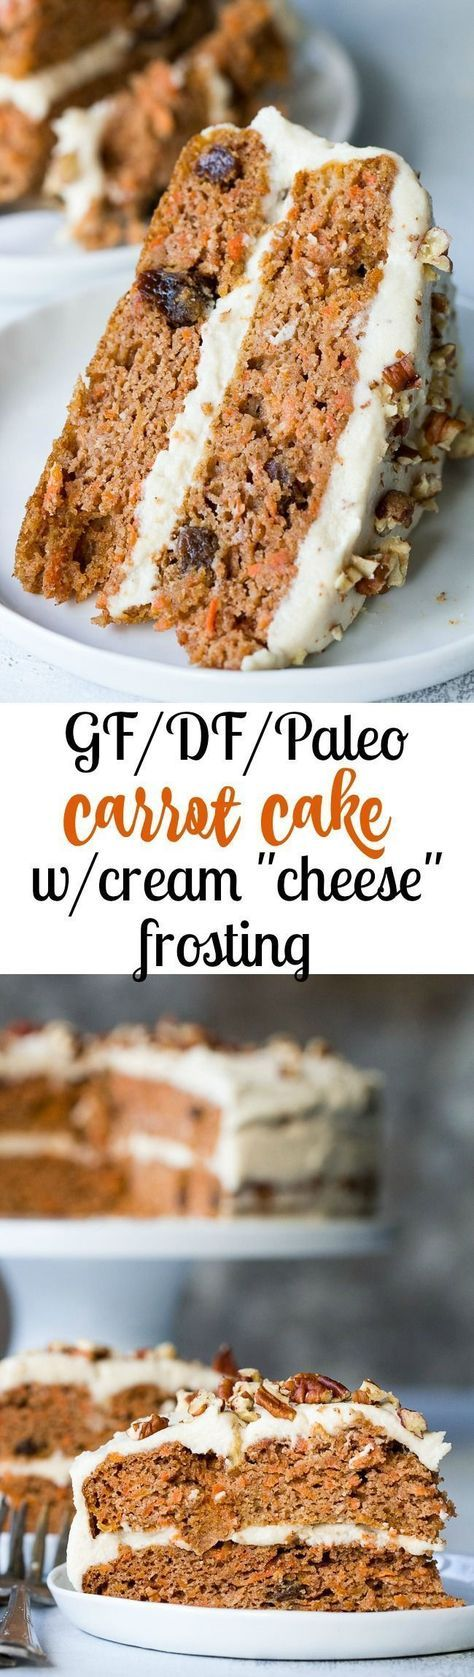 The perfectly moist, sweet, and subtly spiced Paleo carrot cake with a coconut cashew cream cheese frosting. Its a gluten free, grain free, dairy free, and refined sugar free delicious Paleo dessert, yet youd never guess this cake is healthy!